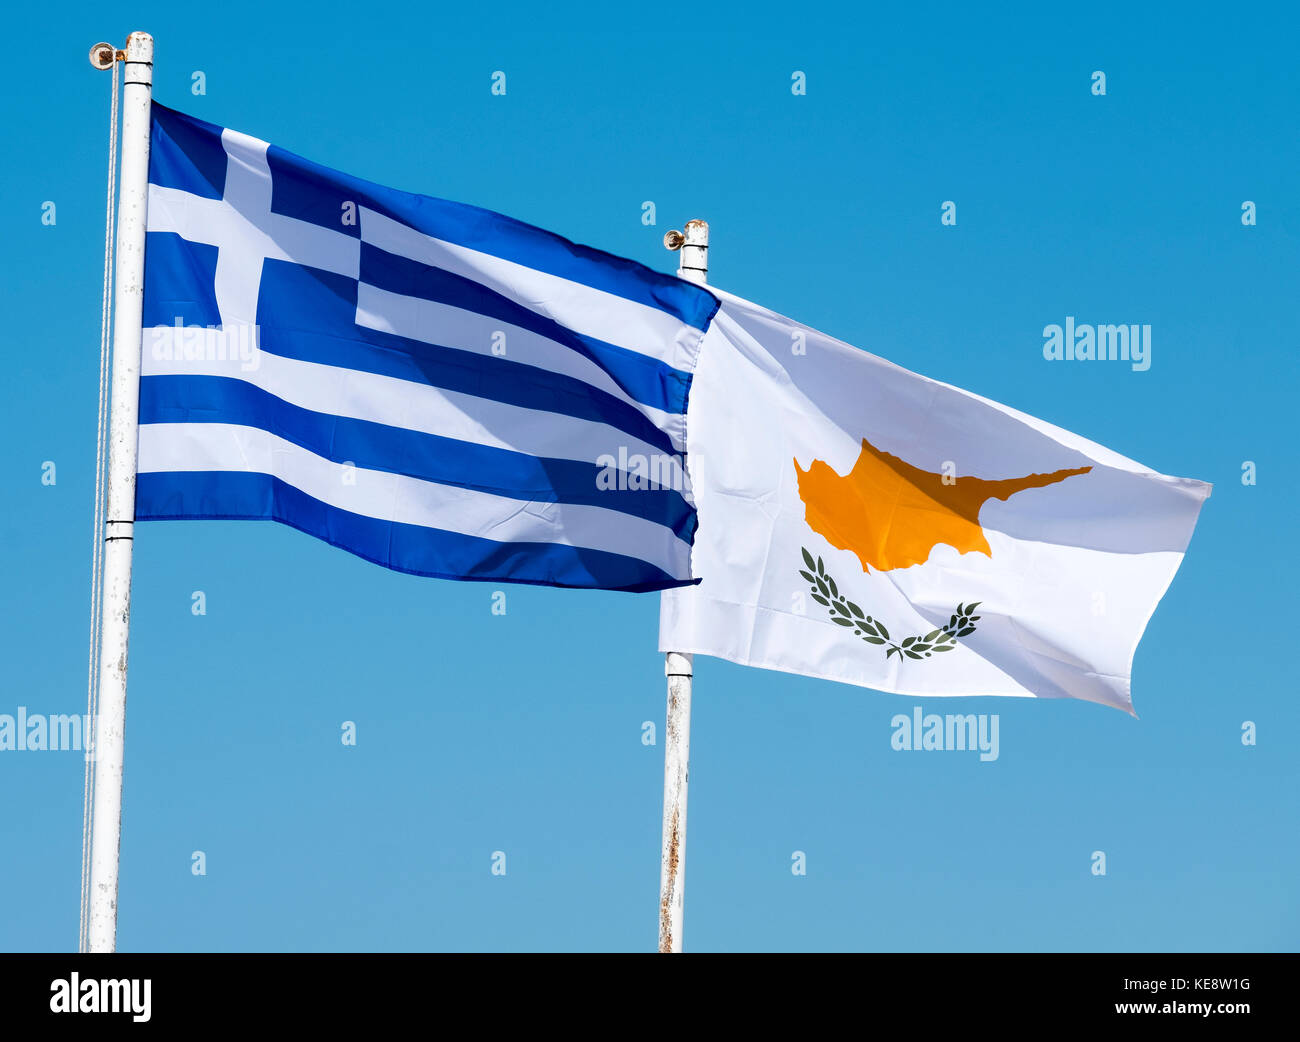 The flags of Greece and Cyprus flutter against a blue sky in Paphos Cyprus. - Stock Image